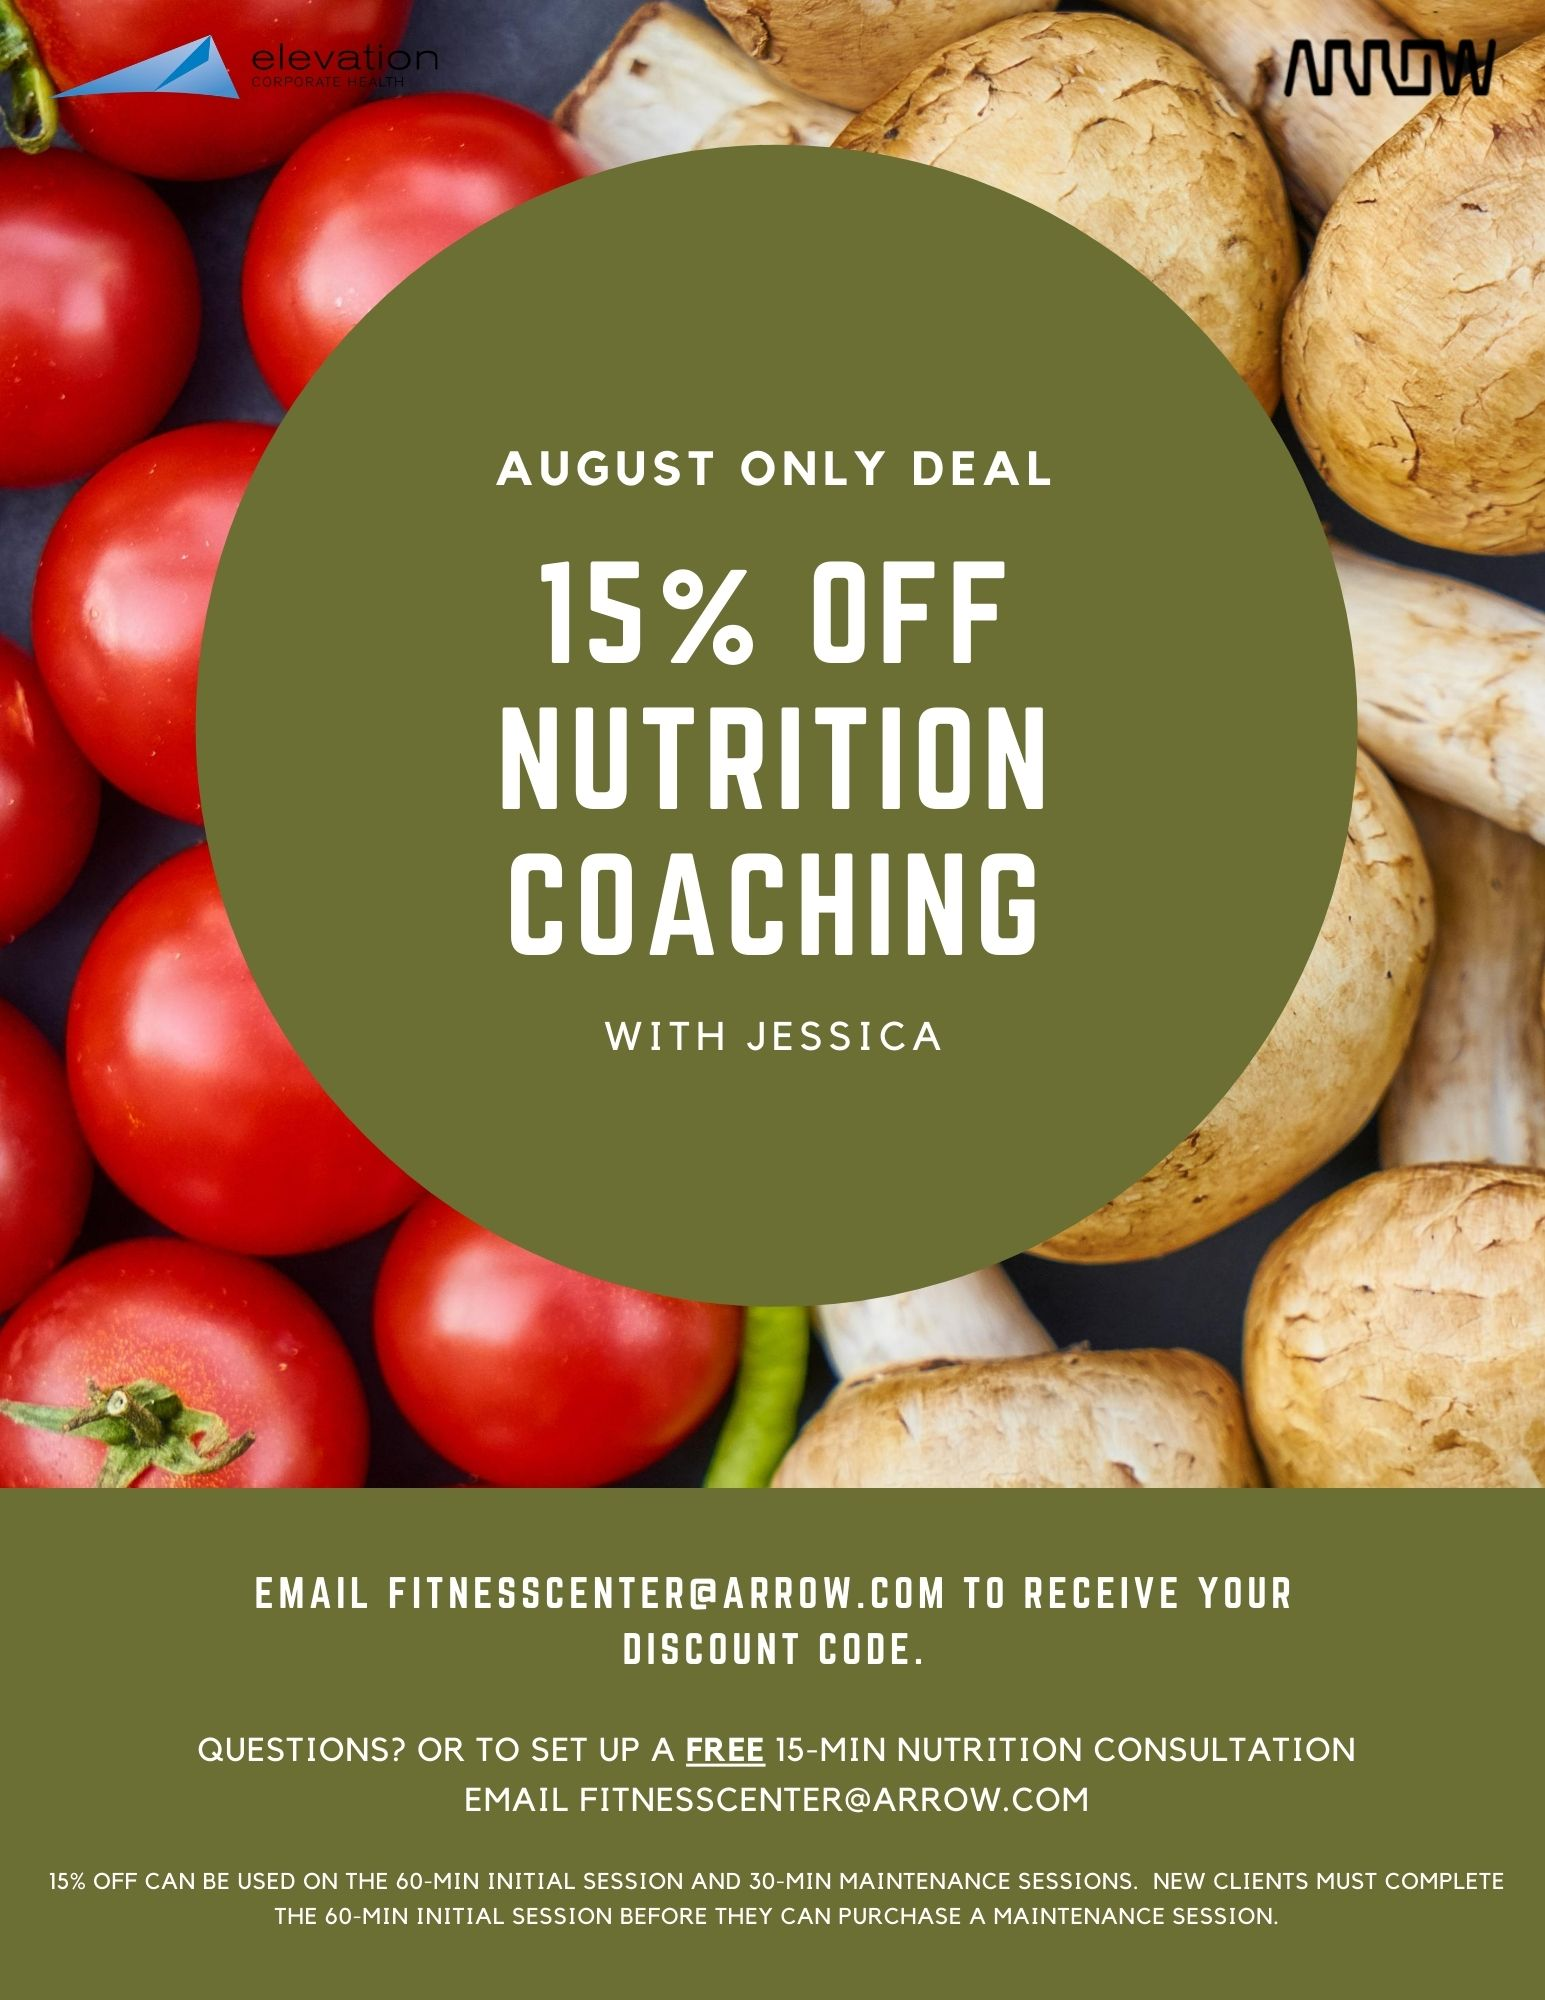 15-OFF-NUTRITION-COACHING-WITH-JESSICA-1